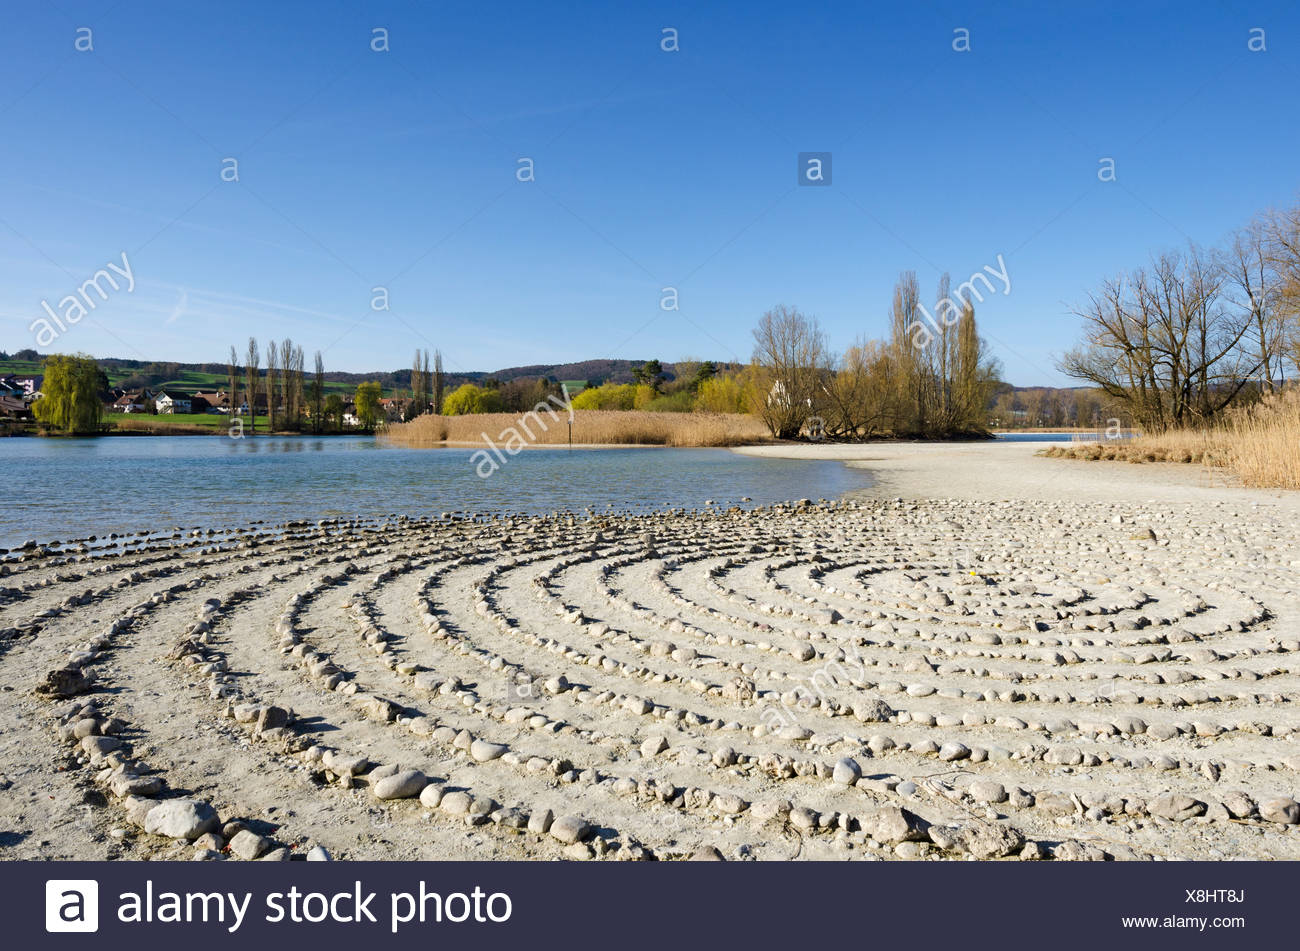 Stone labyrinth on Werd island, can be used for meditation, Werd island at the back, Canton of Schaffhausen, Switzerland, Europe - Stock Image